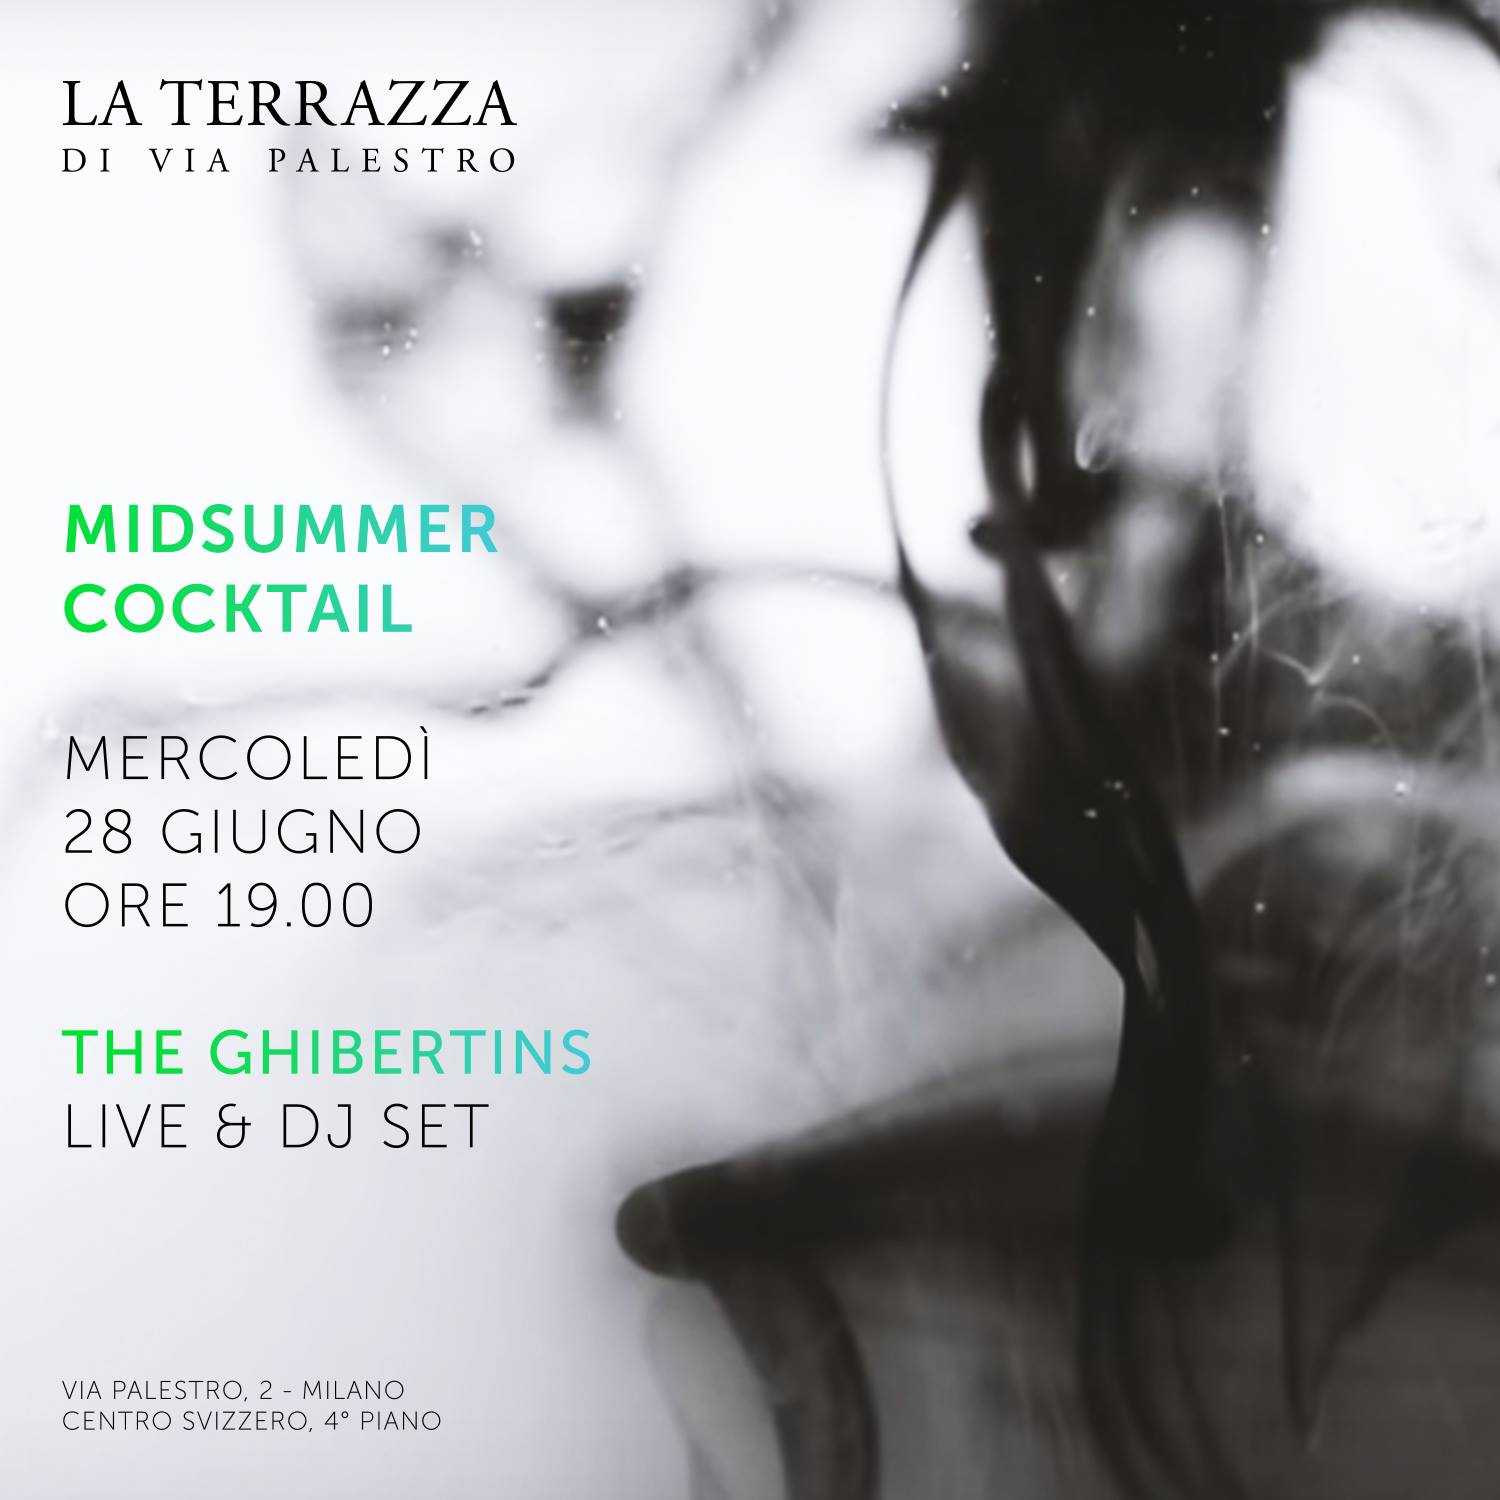 Midsummer Cocktail @terrazzapalestro I The Ghibertins Live